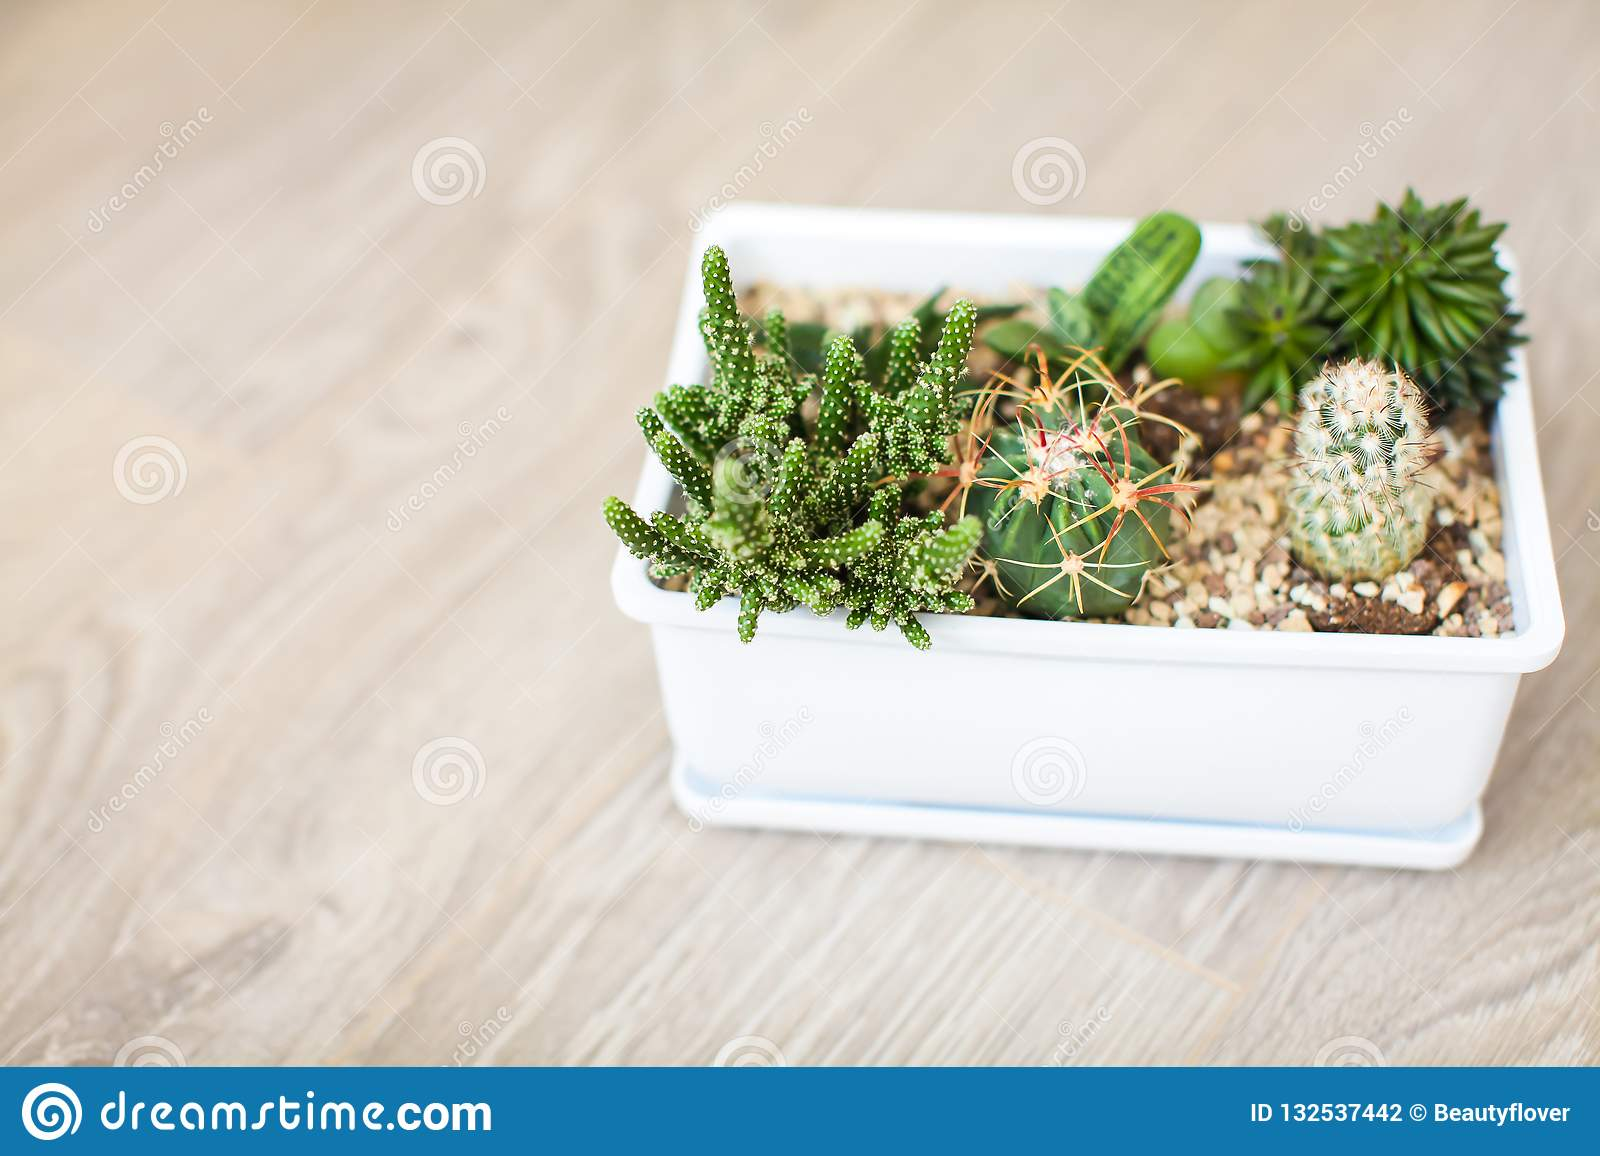 Top View House Plants With Cactus And Succulents In White Pot Unique Indoor Plant Decor Stock Photo Image Of Botany Growth 132537442